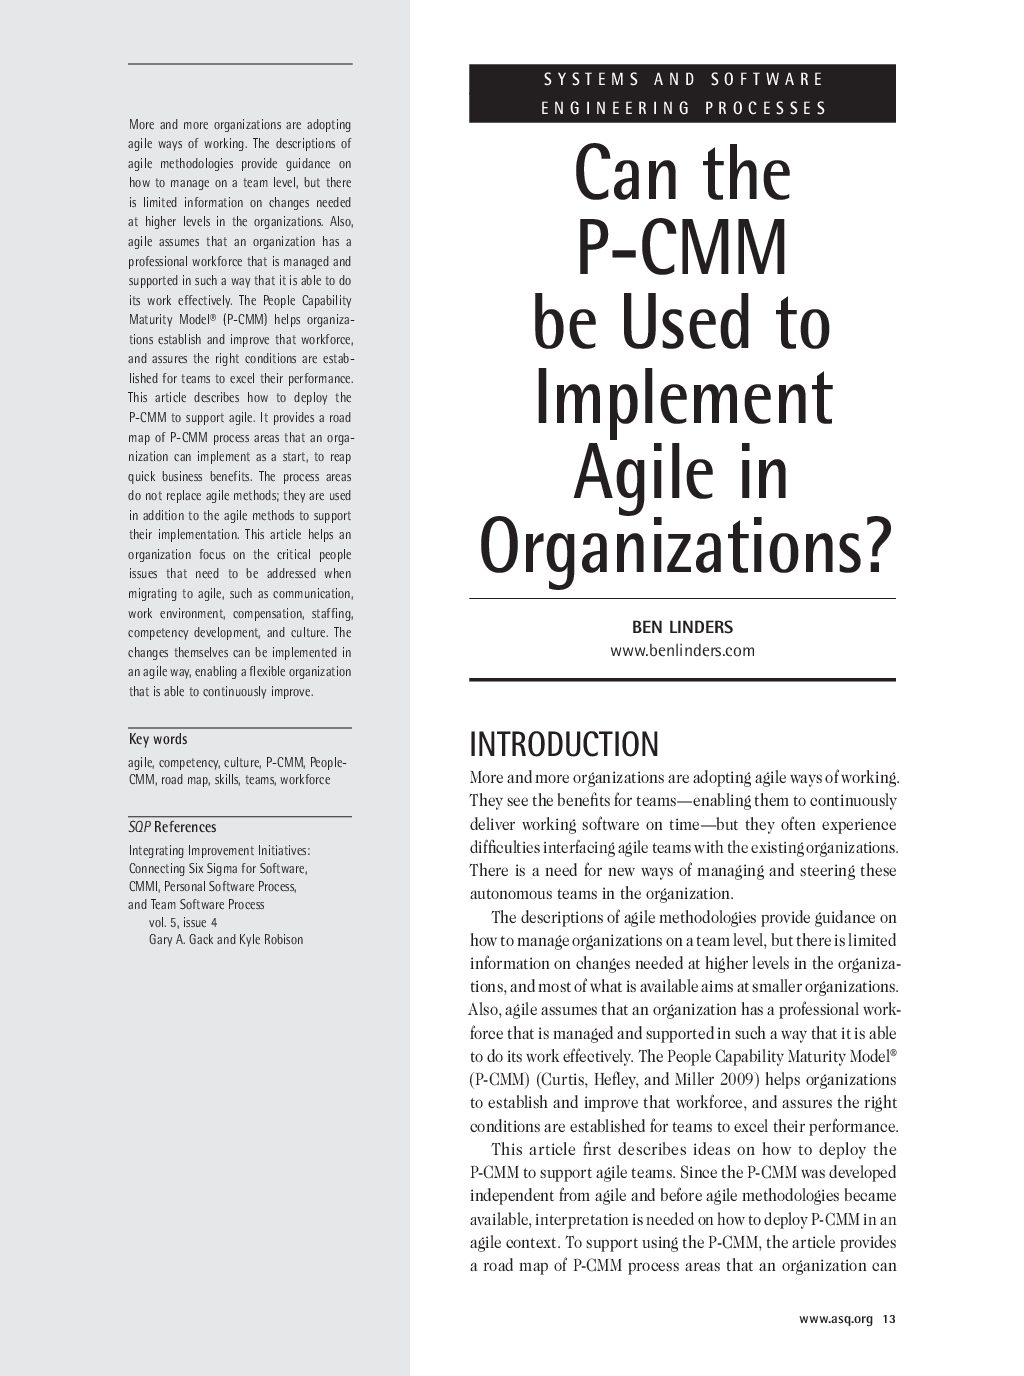 Ben Linders SQP can-the-p-cmm-be-used-to-implement-agile-in